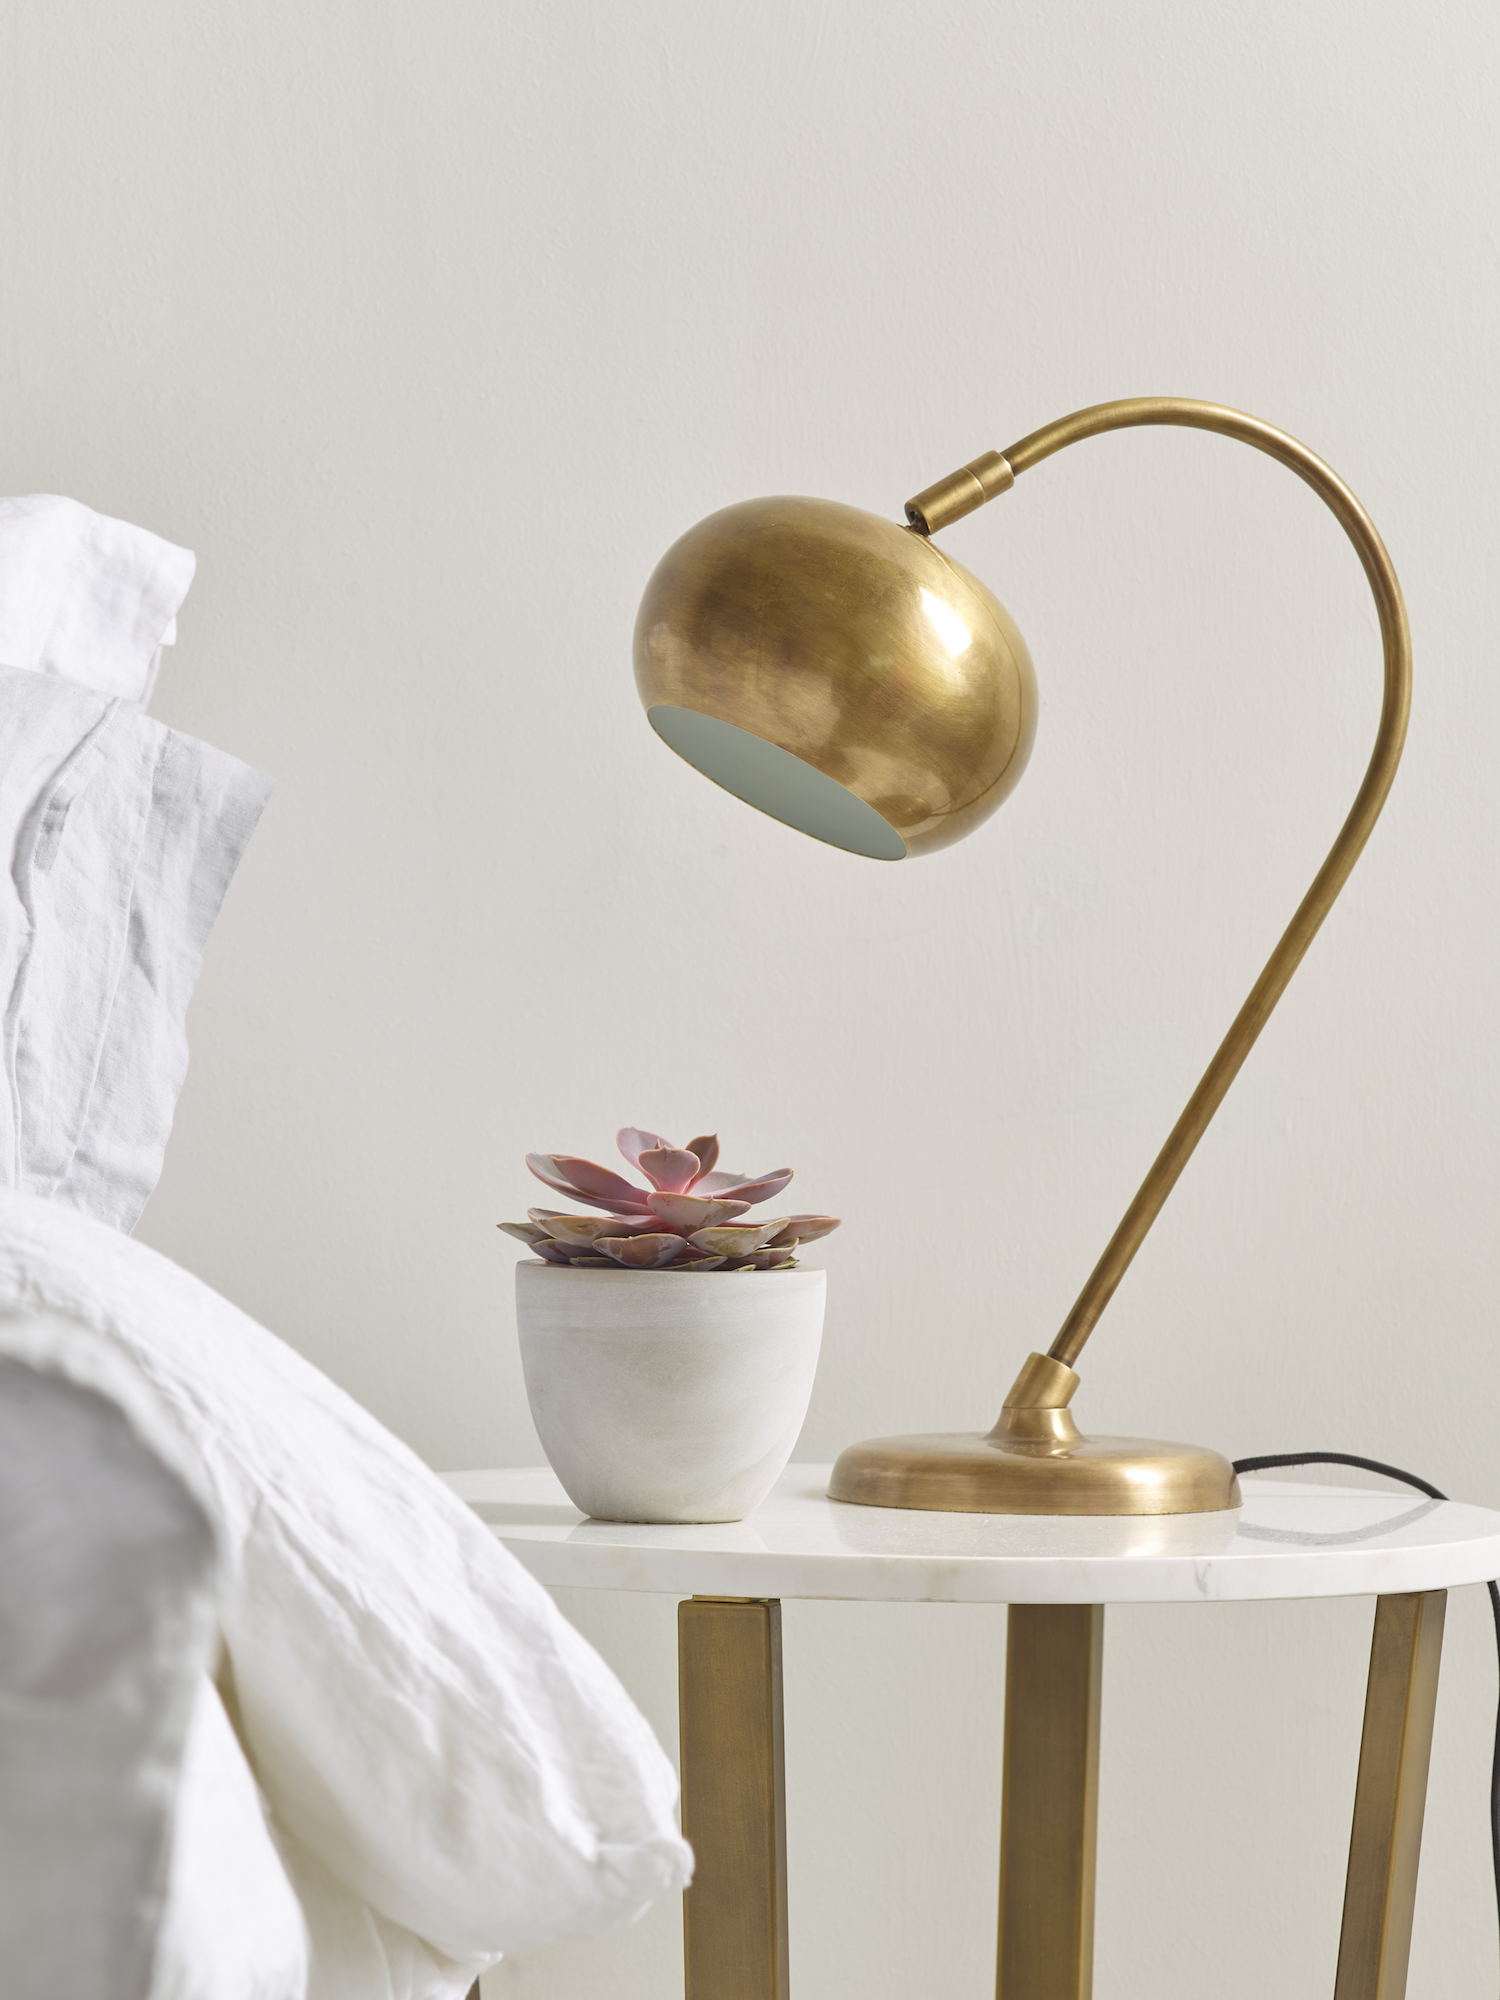 www.coxandcox.co.uk-Curved-Brass-Table-Lamp-H-CURVELAMP-OFF-£225.00.jpg